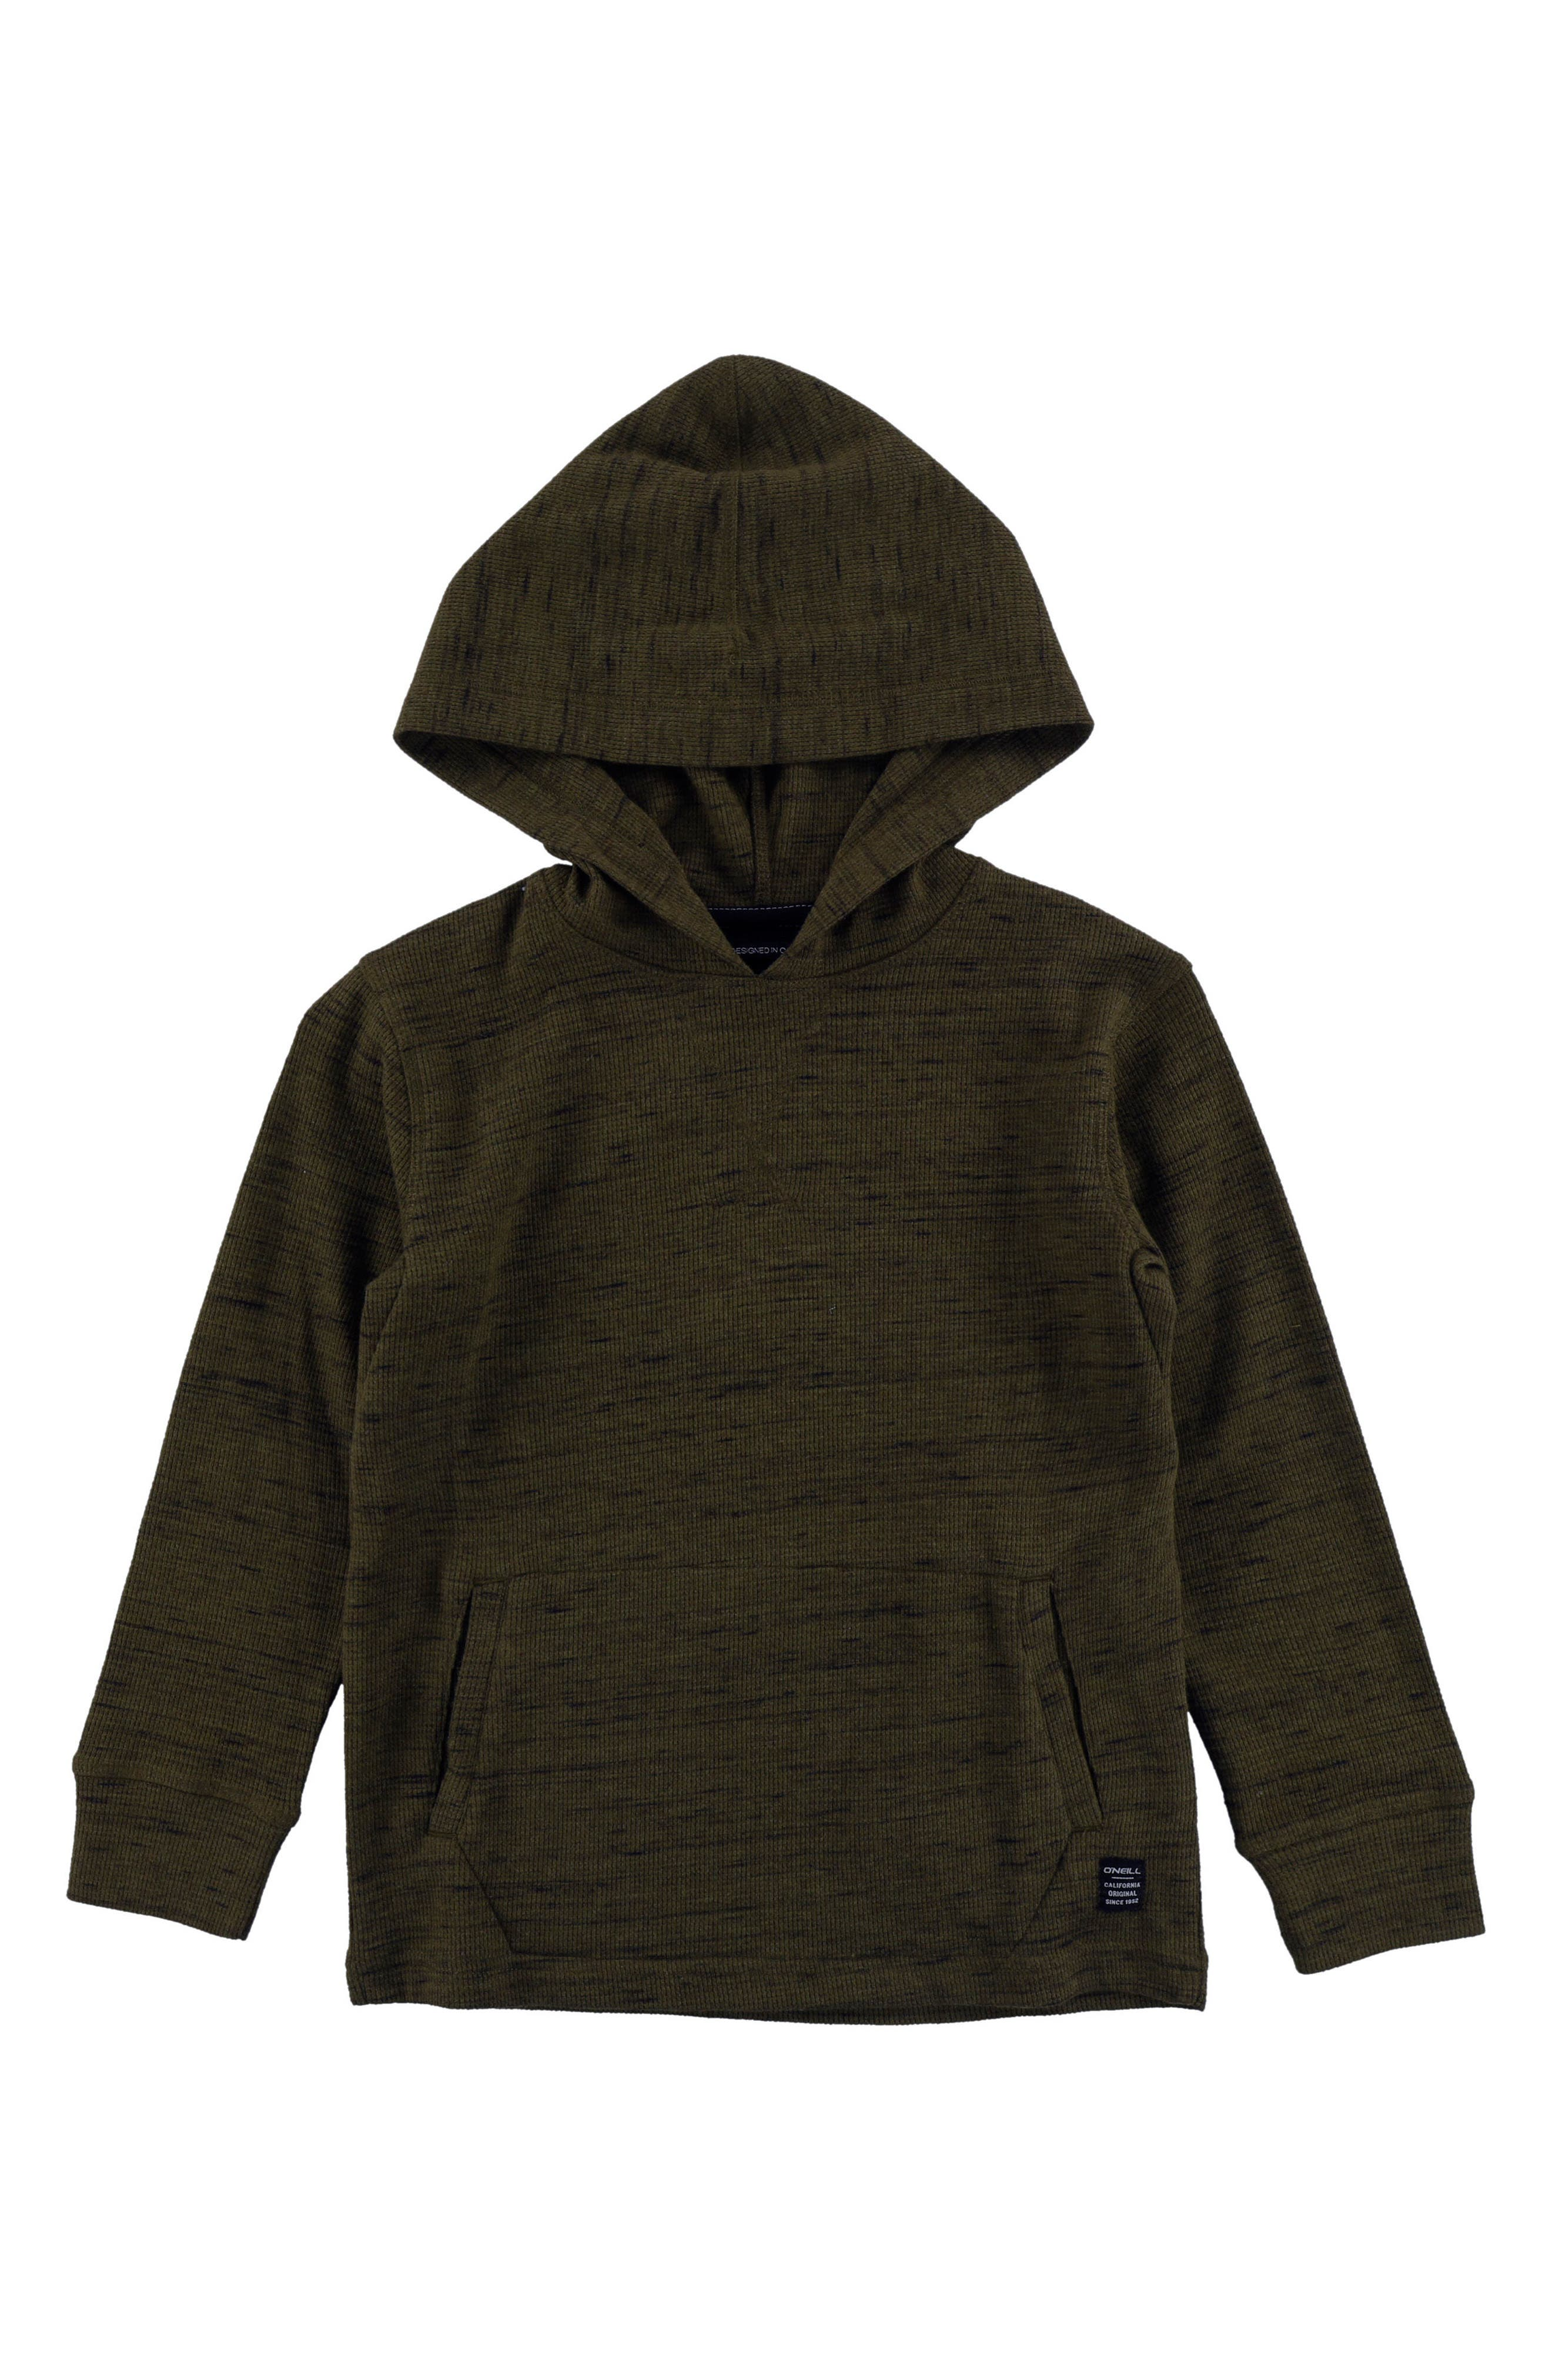 O'Neill Boldin Thermal Pullover Hoodie (Toddler Boys, Little Boys & Big Boys)